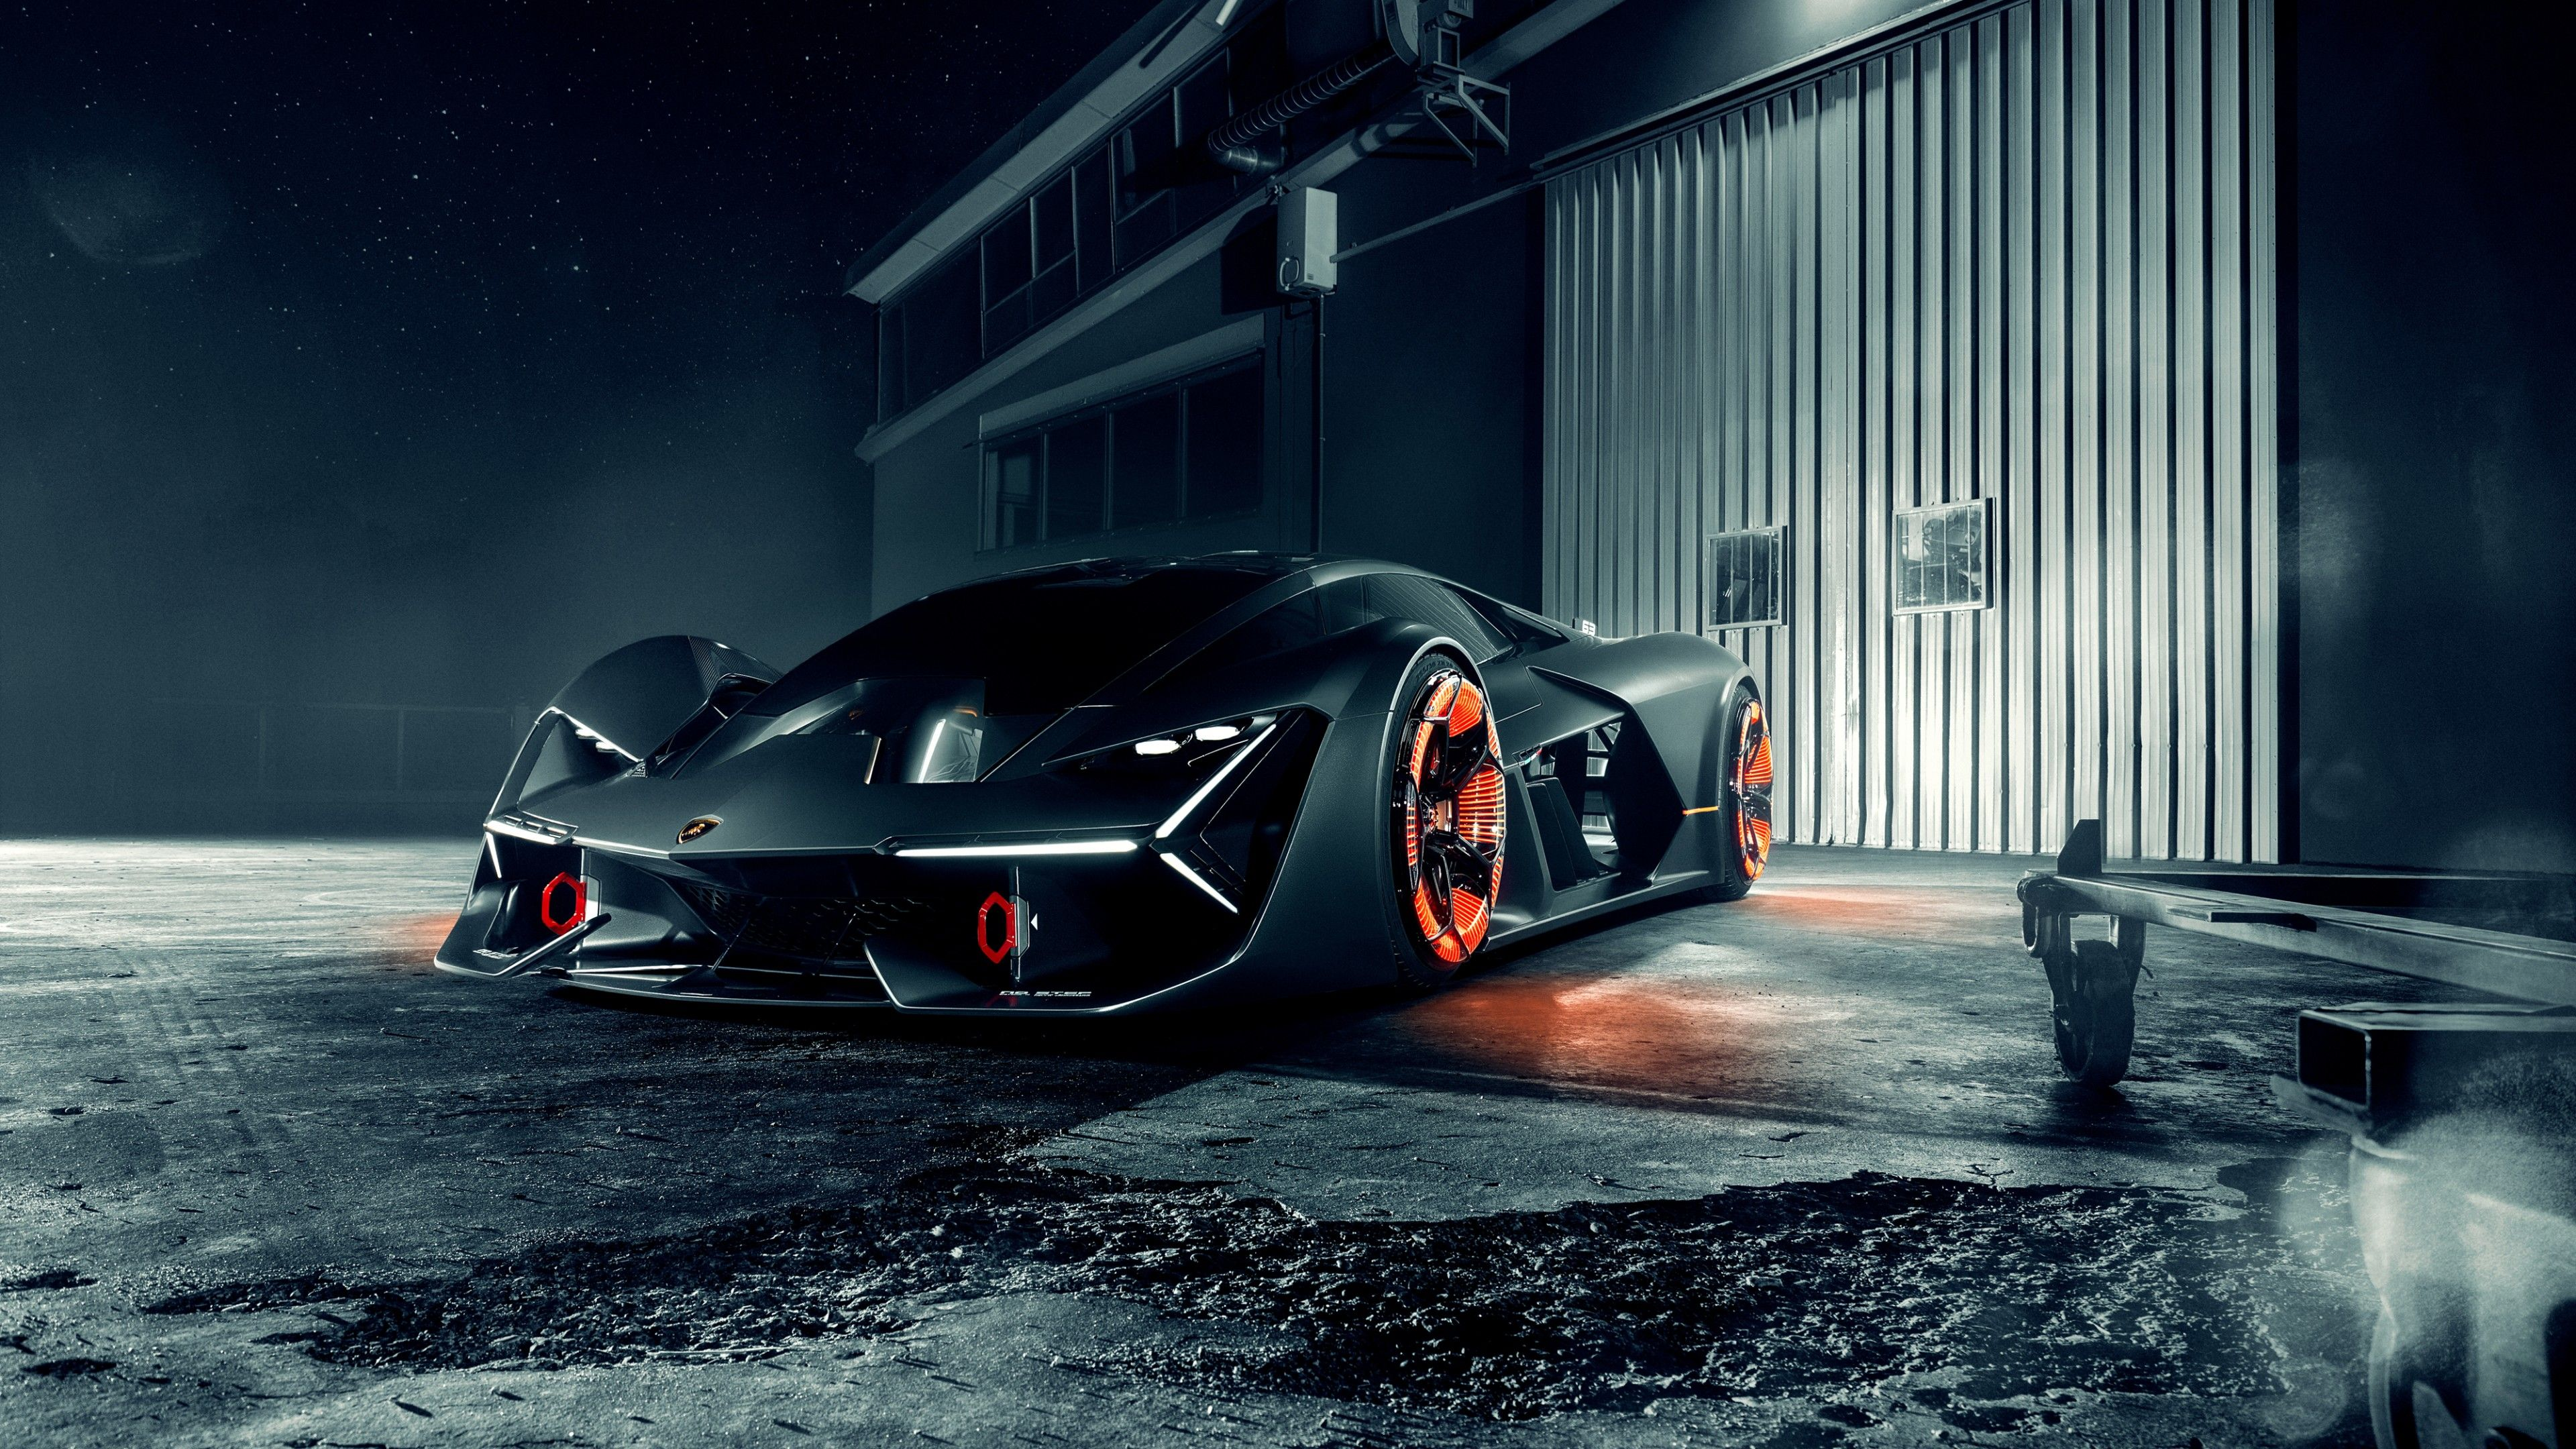 Stunning Lamborghini Terzo Millennio Car Hd Wallpaper 4k With